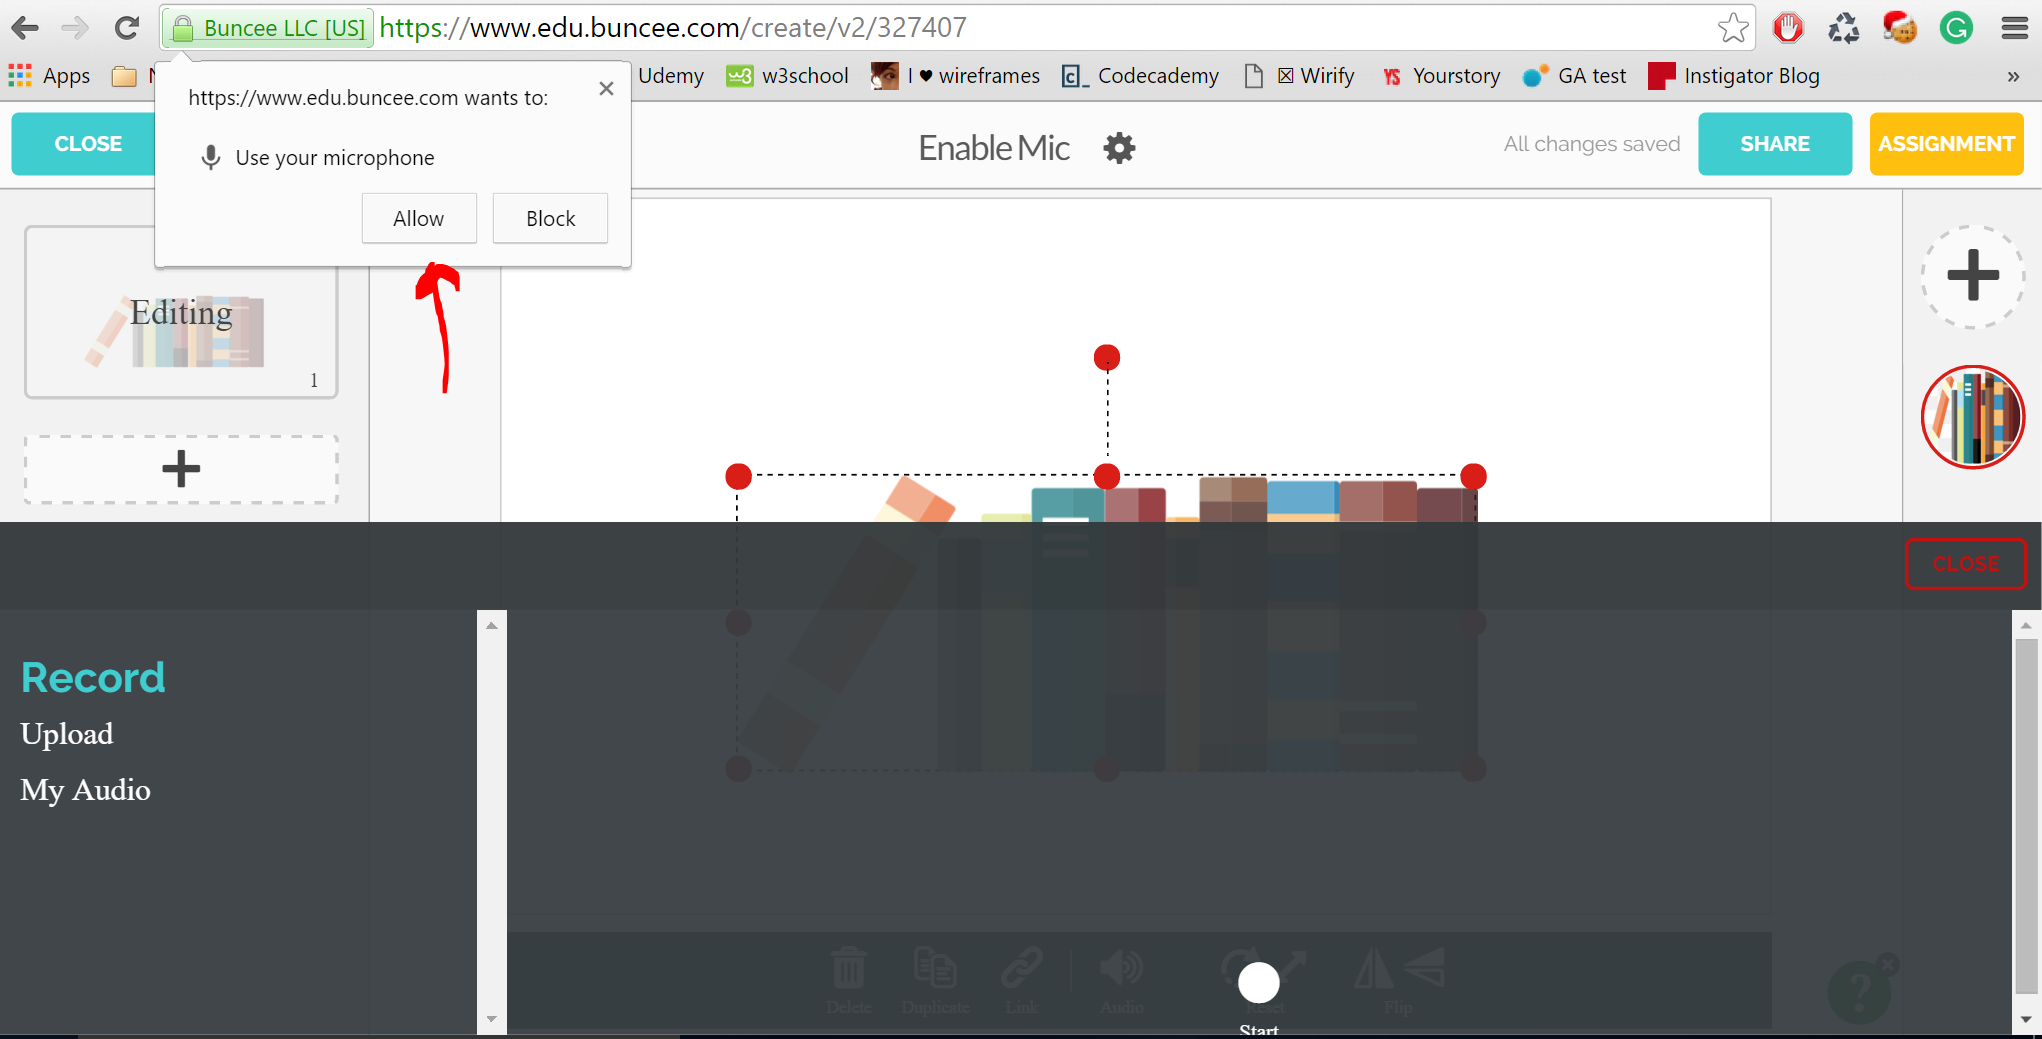 How Do I Enable A Mic In Google Chrome Buncee Help Center Block Diagram 1 When You Click On Audio And Then Record Prompted By The Browser Allow